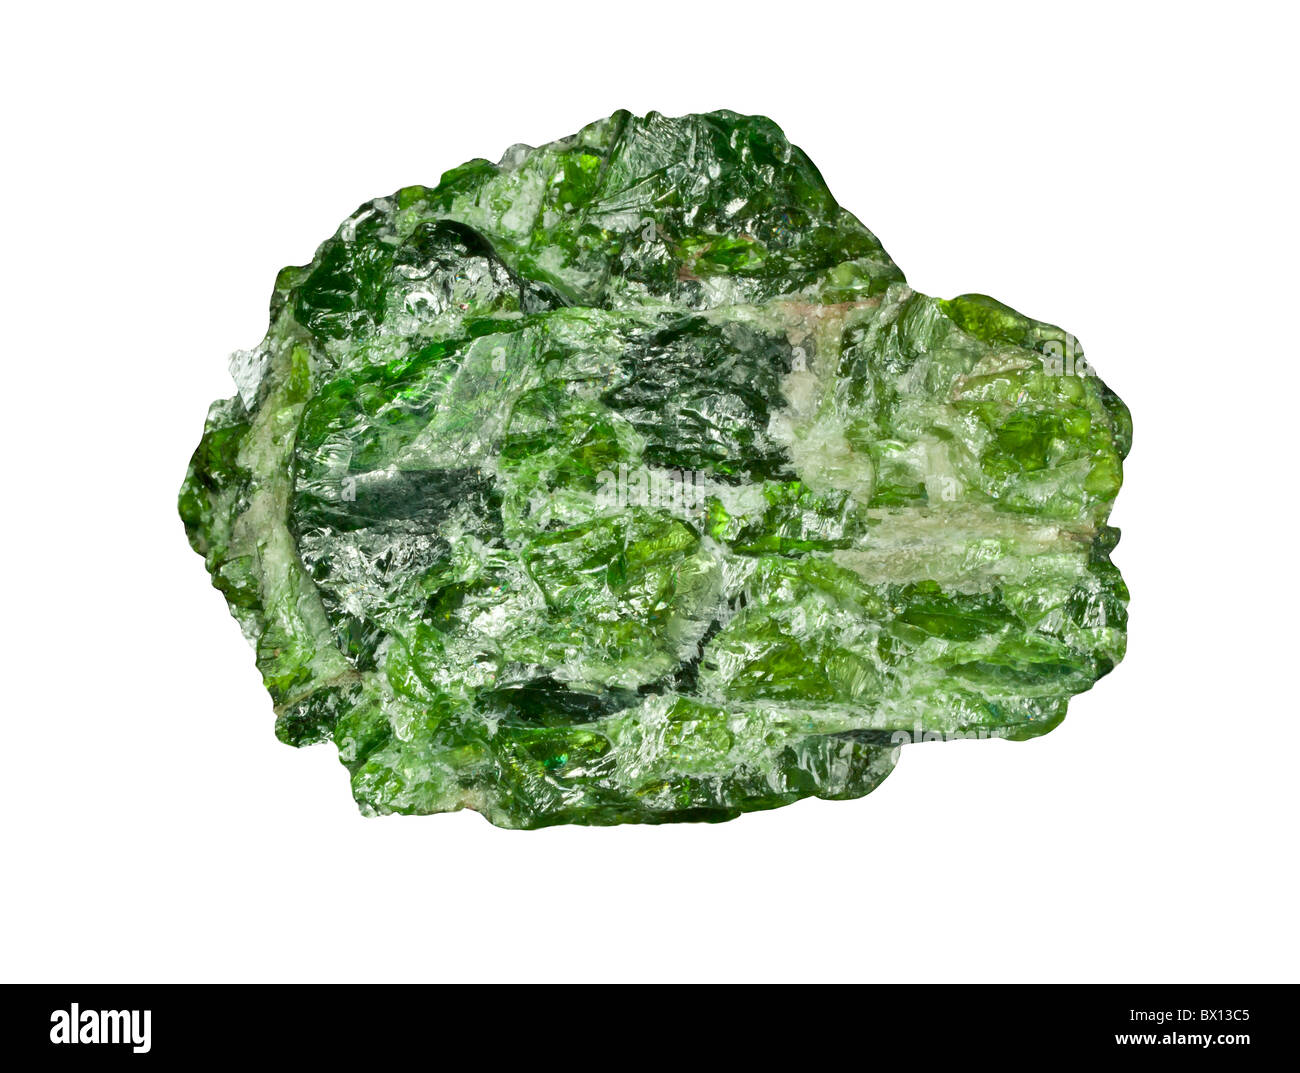 Chrome diopside - Stock Image